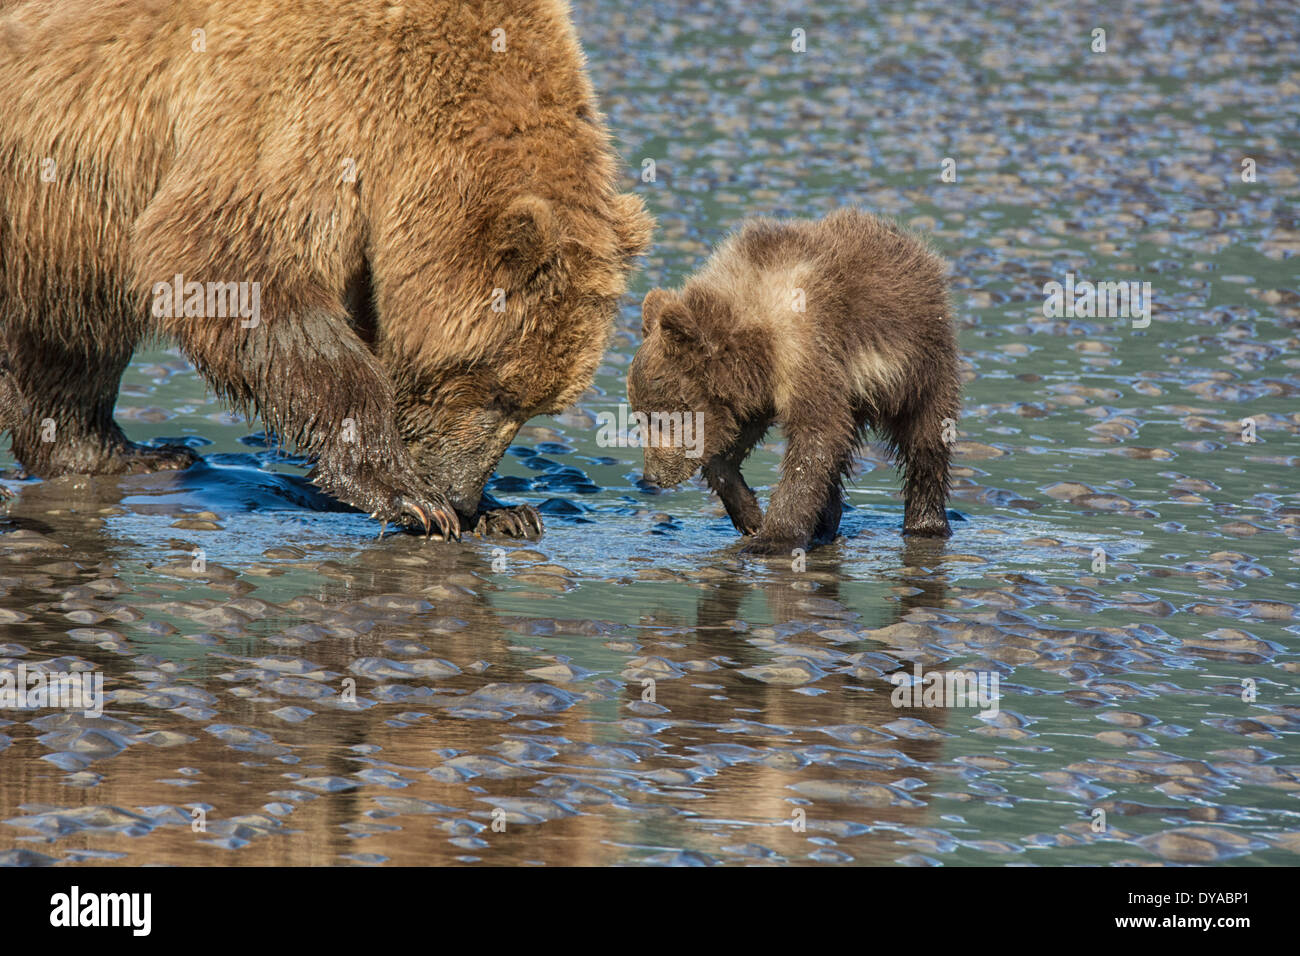 two-grizzly-bears-mother-and-spring-cub-